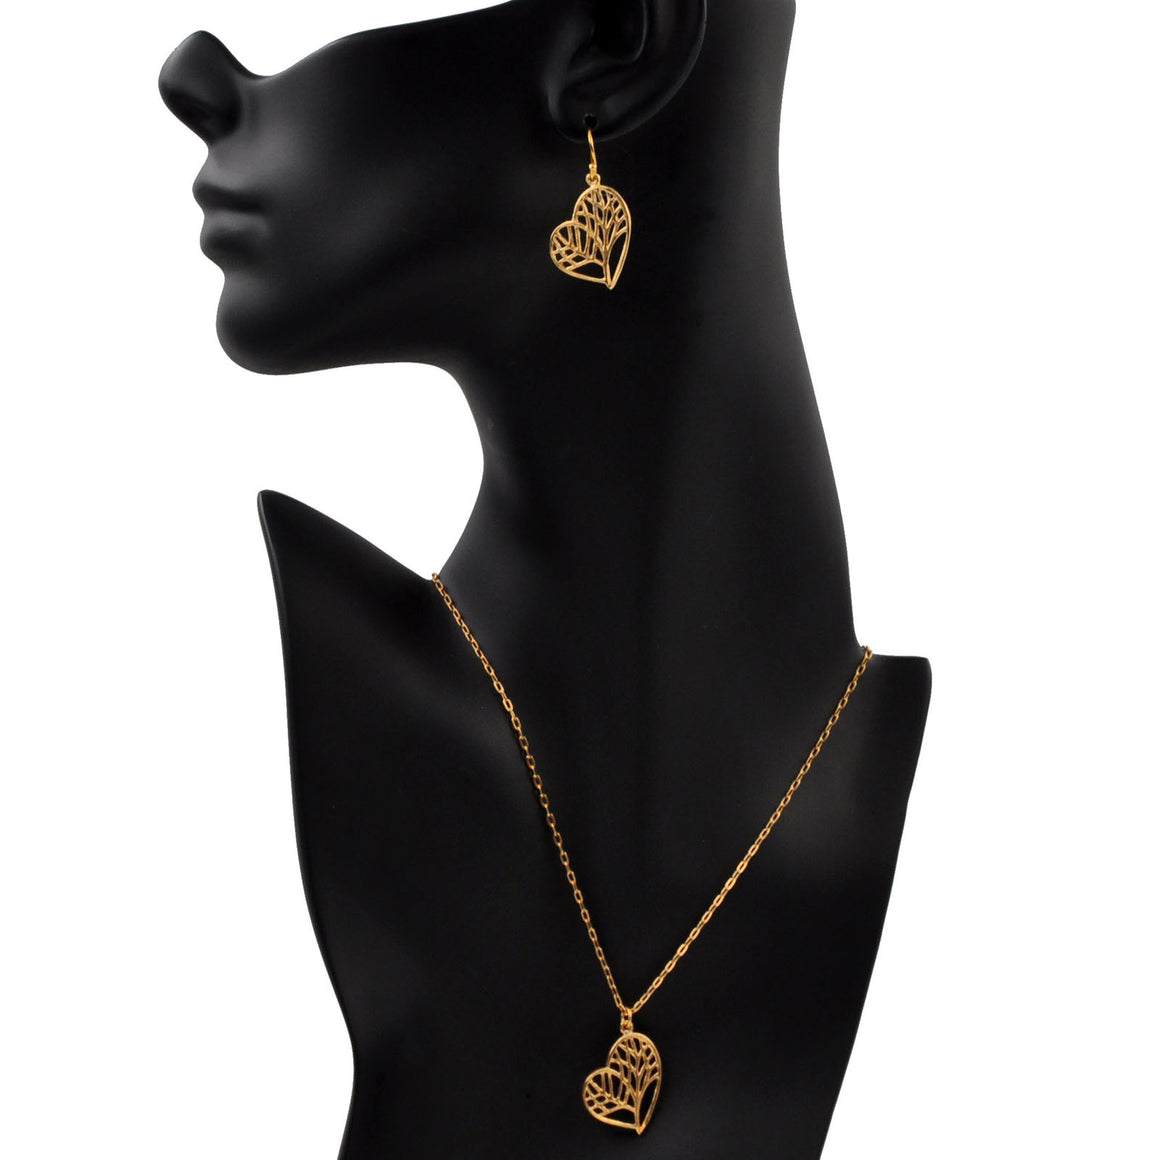 Tree of Life Heart Necklace - 24K Gold Plated